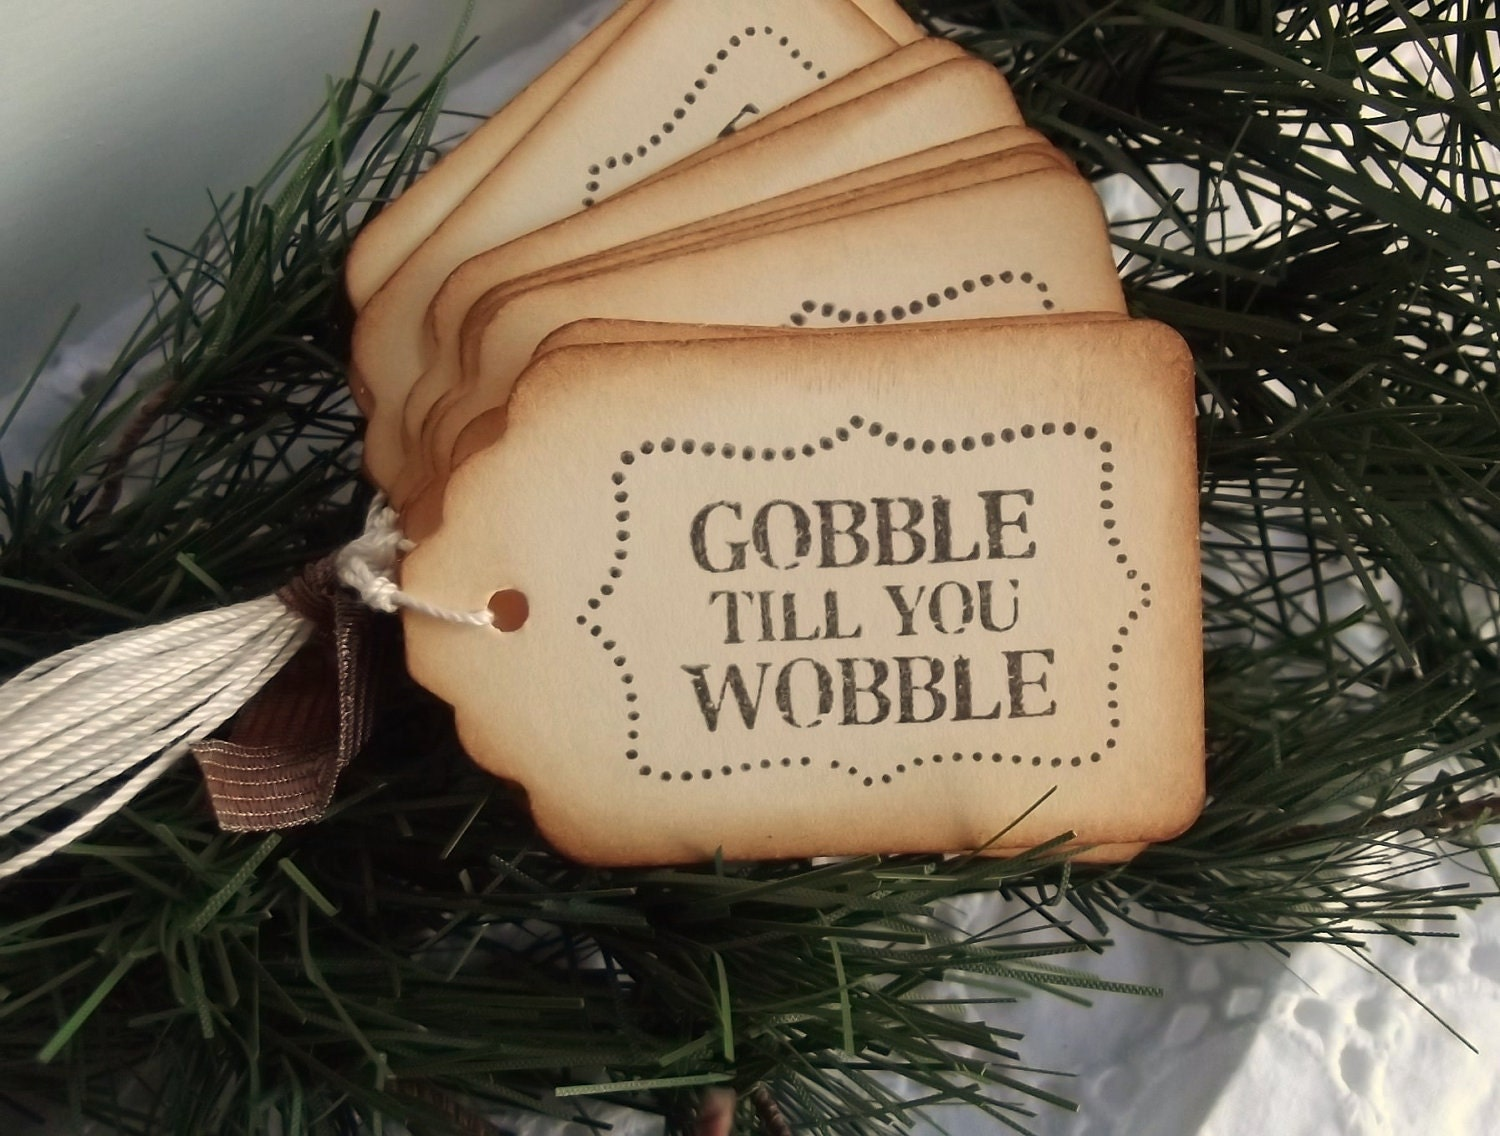 Gobble till you Wobble Tags - Thanksgiving Tags - SweetlyScrappedArt